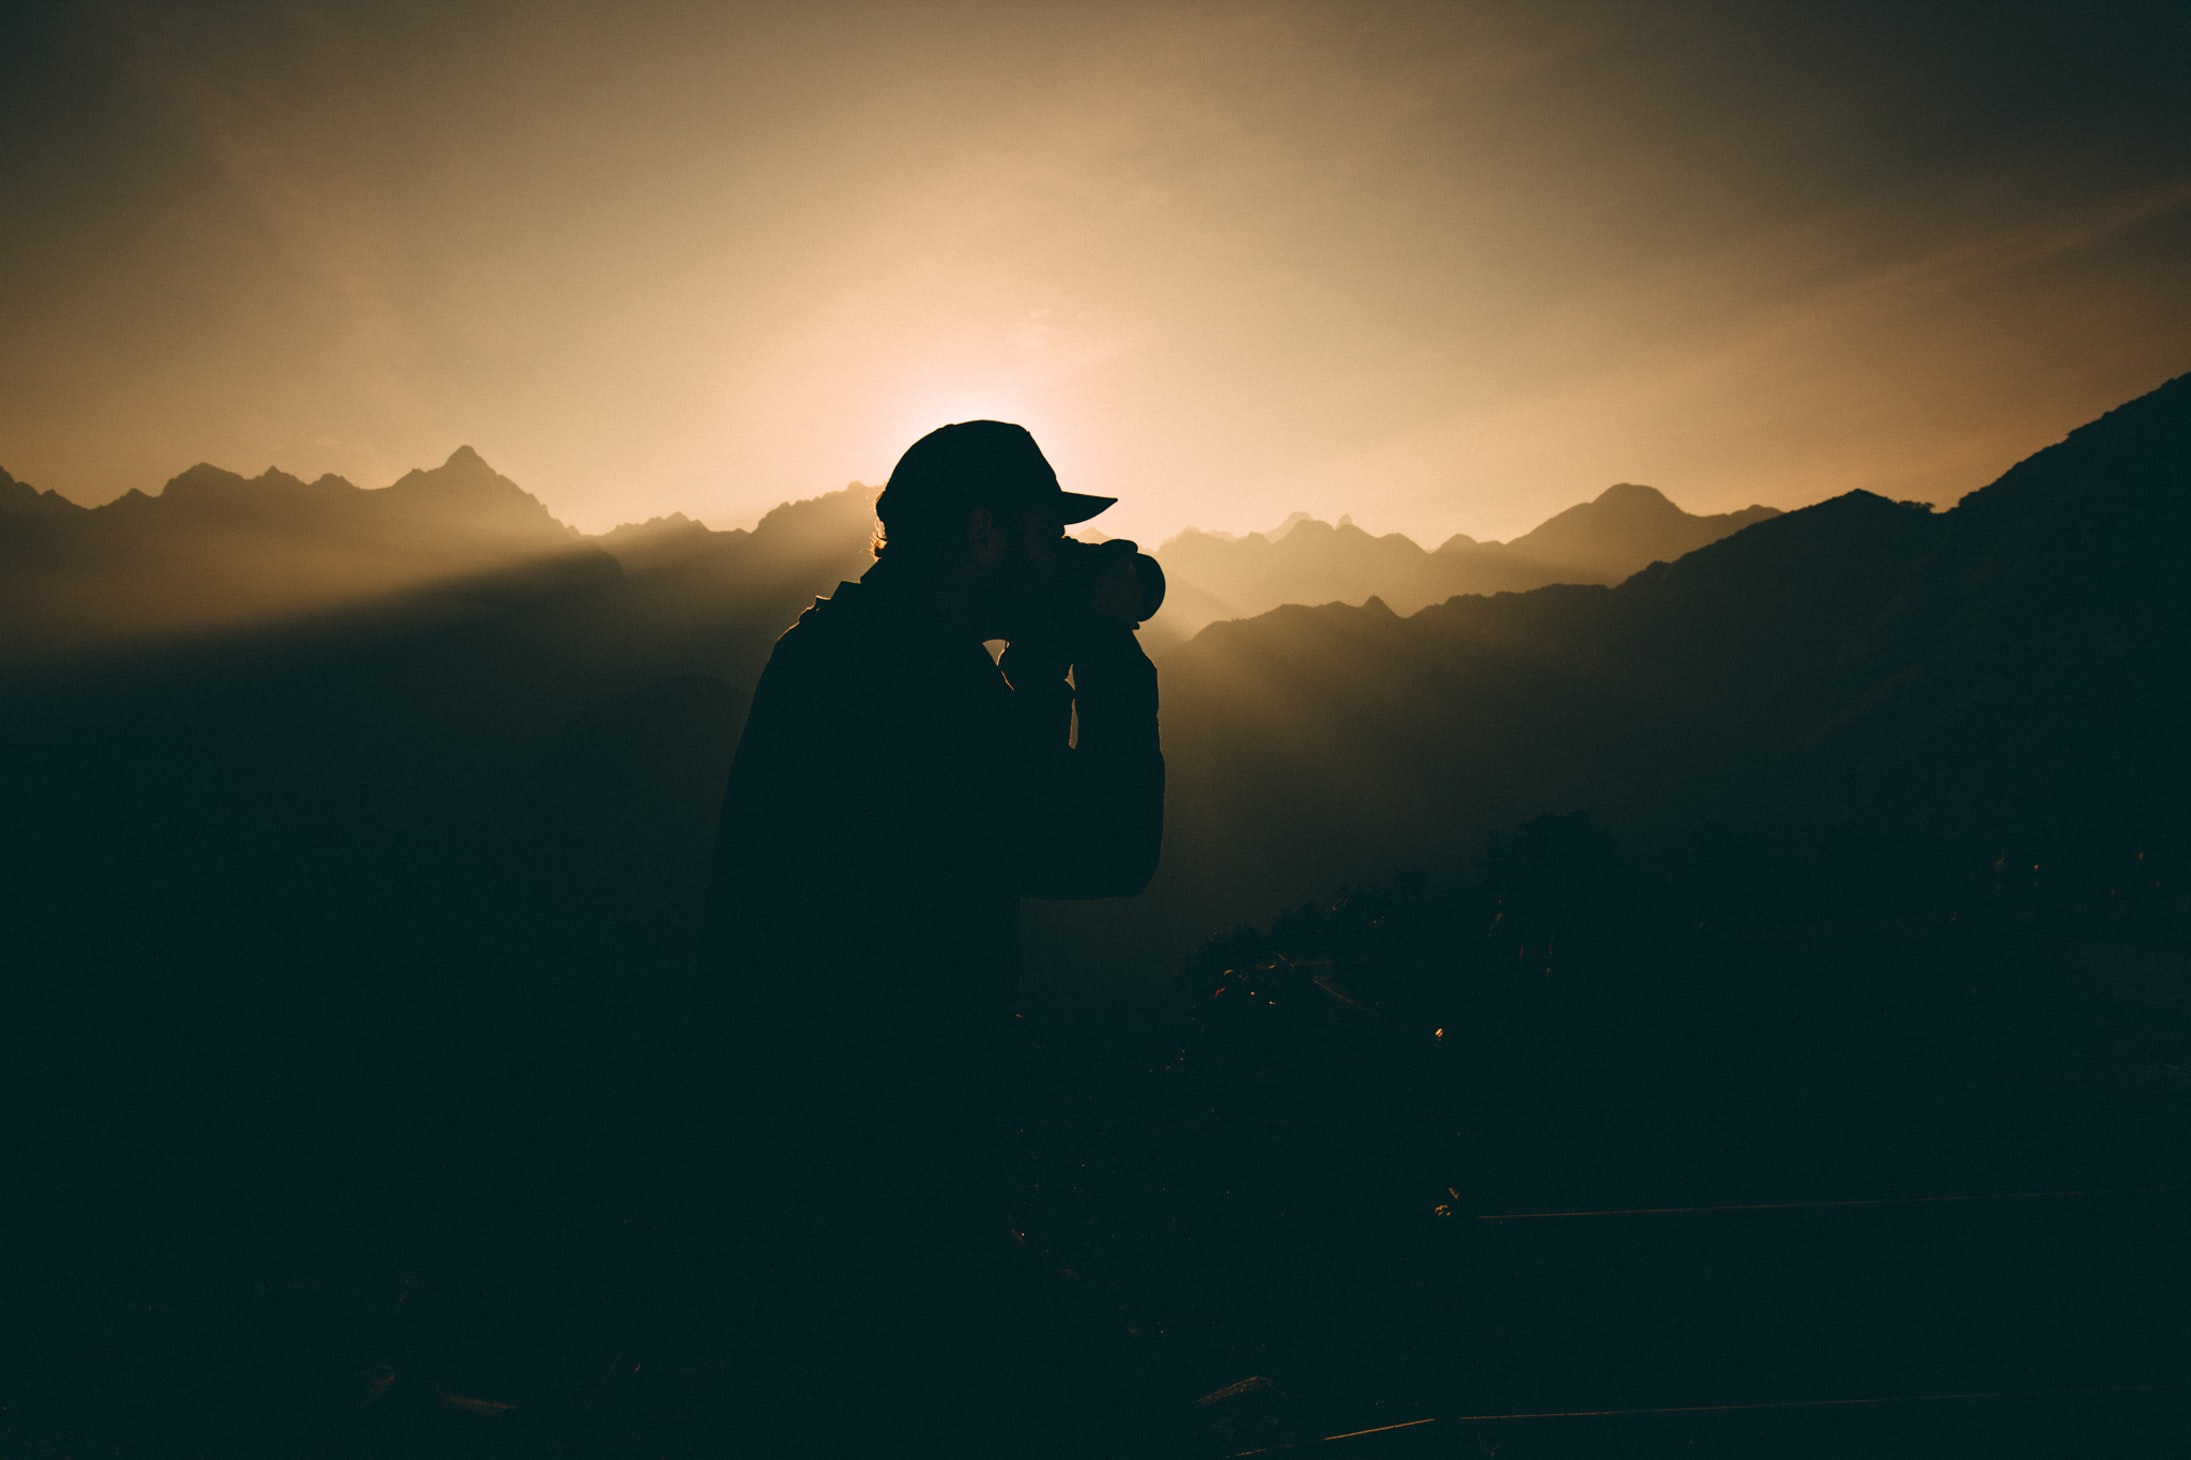 silhouette of man carrying camera near mountains during sunset